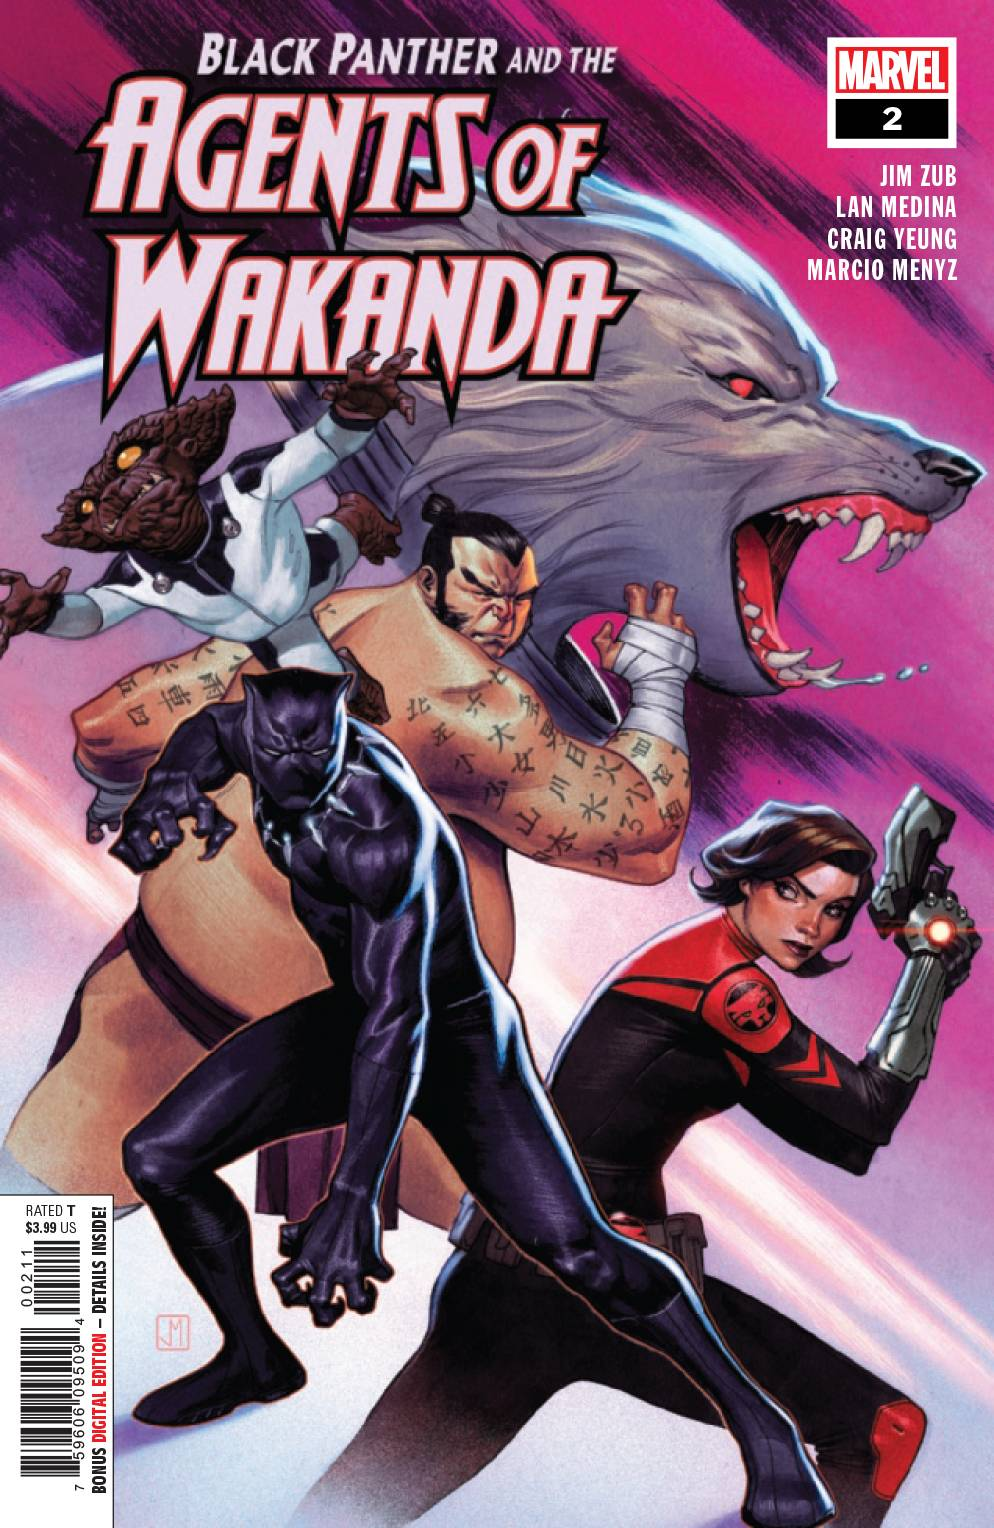 Black Panther and the Agents of Wakanda #2 (2019)